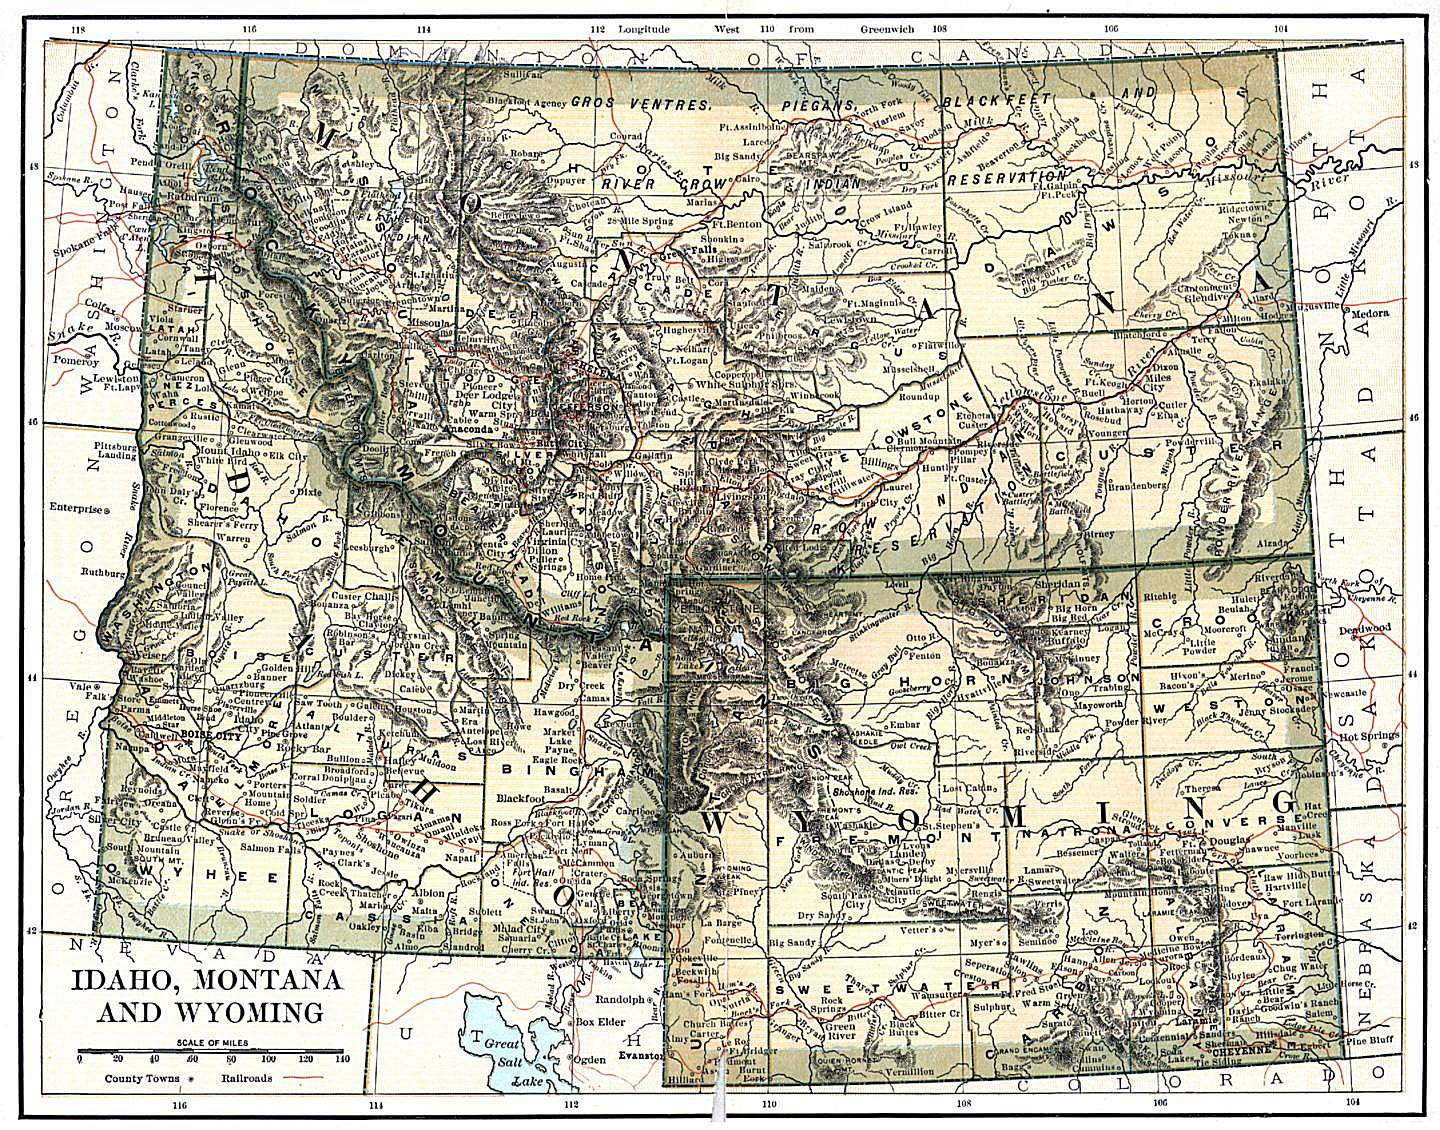 Utah And Idaho Map.Wyoming Maps Wyoming Digital Map Library Table Of Contents United